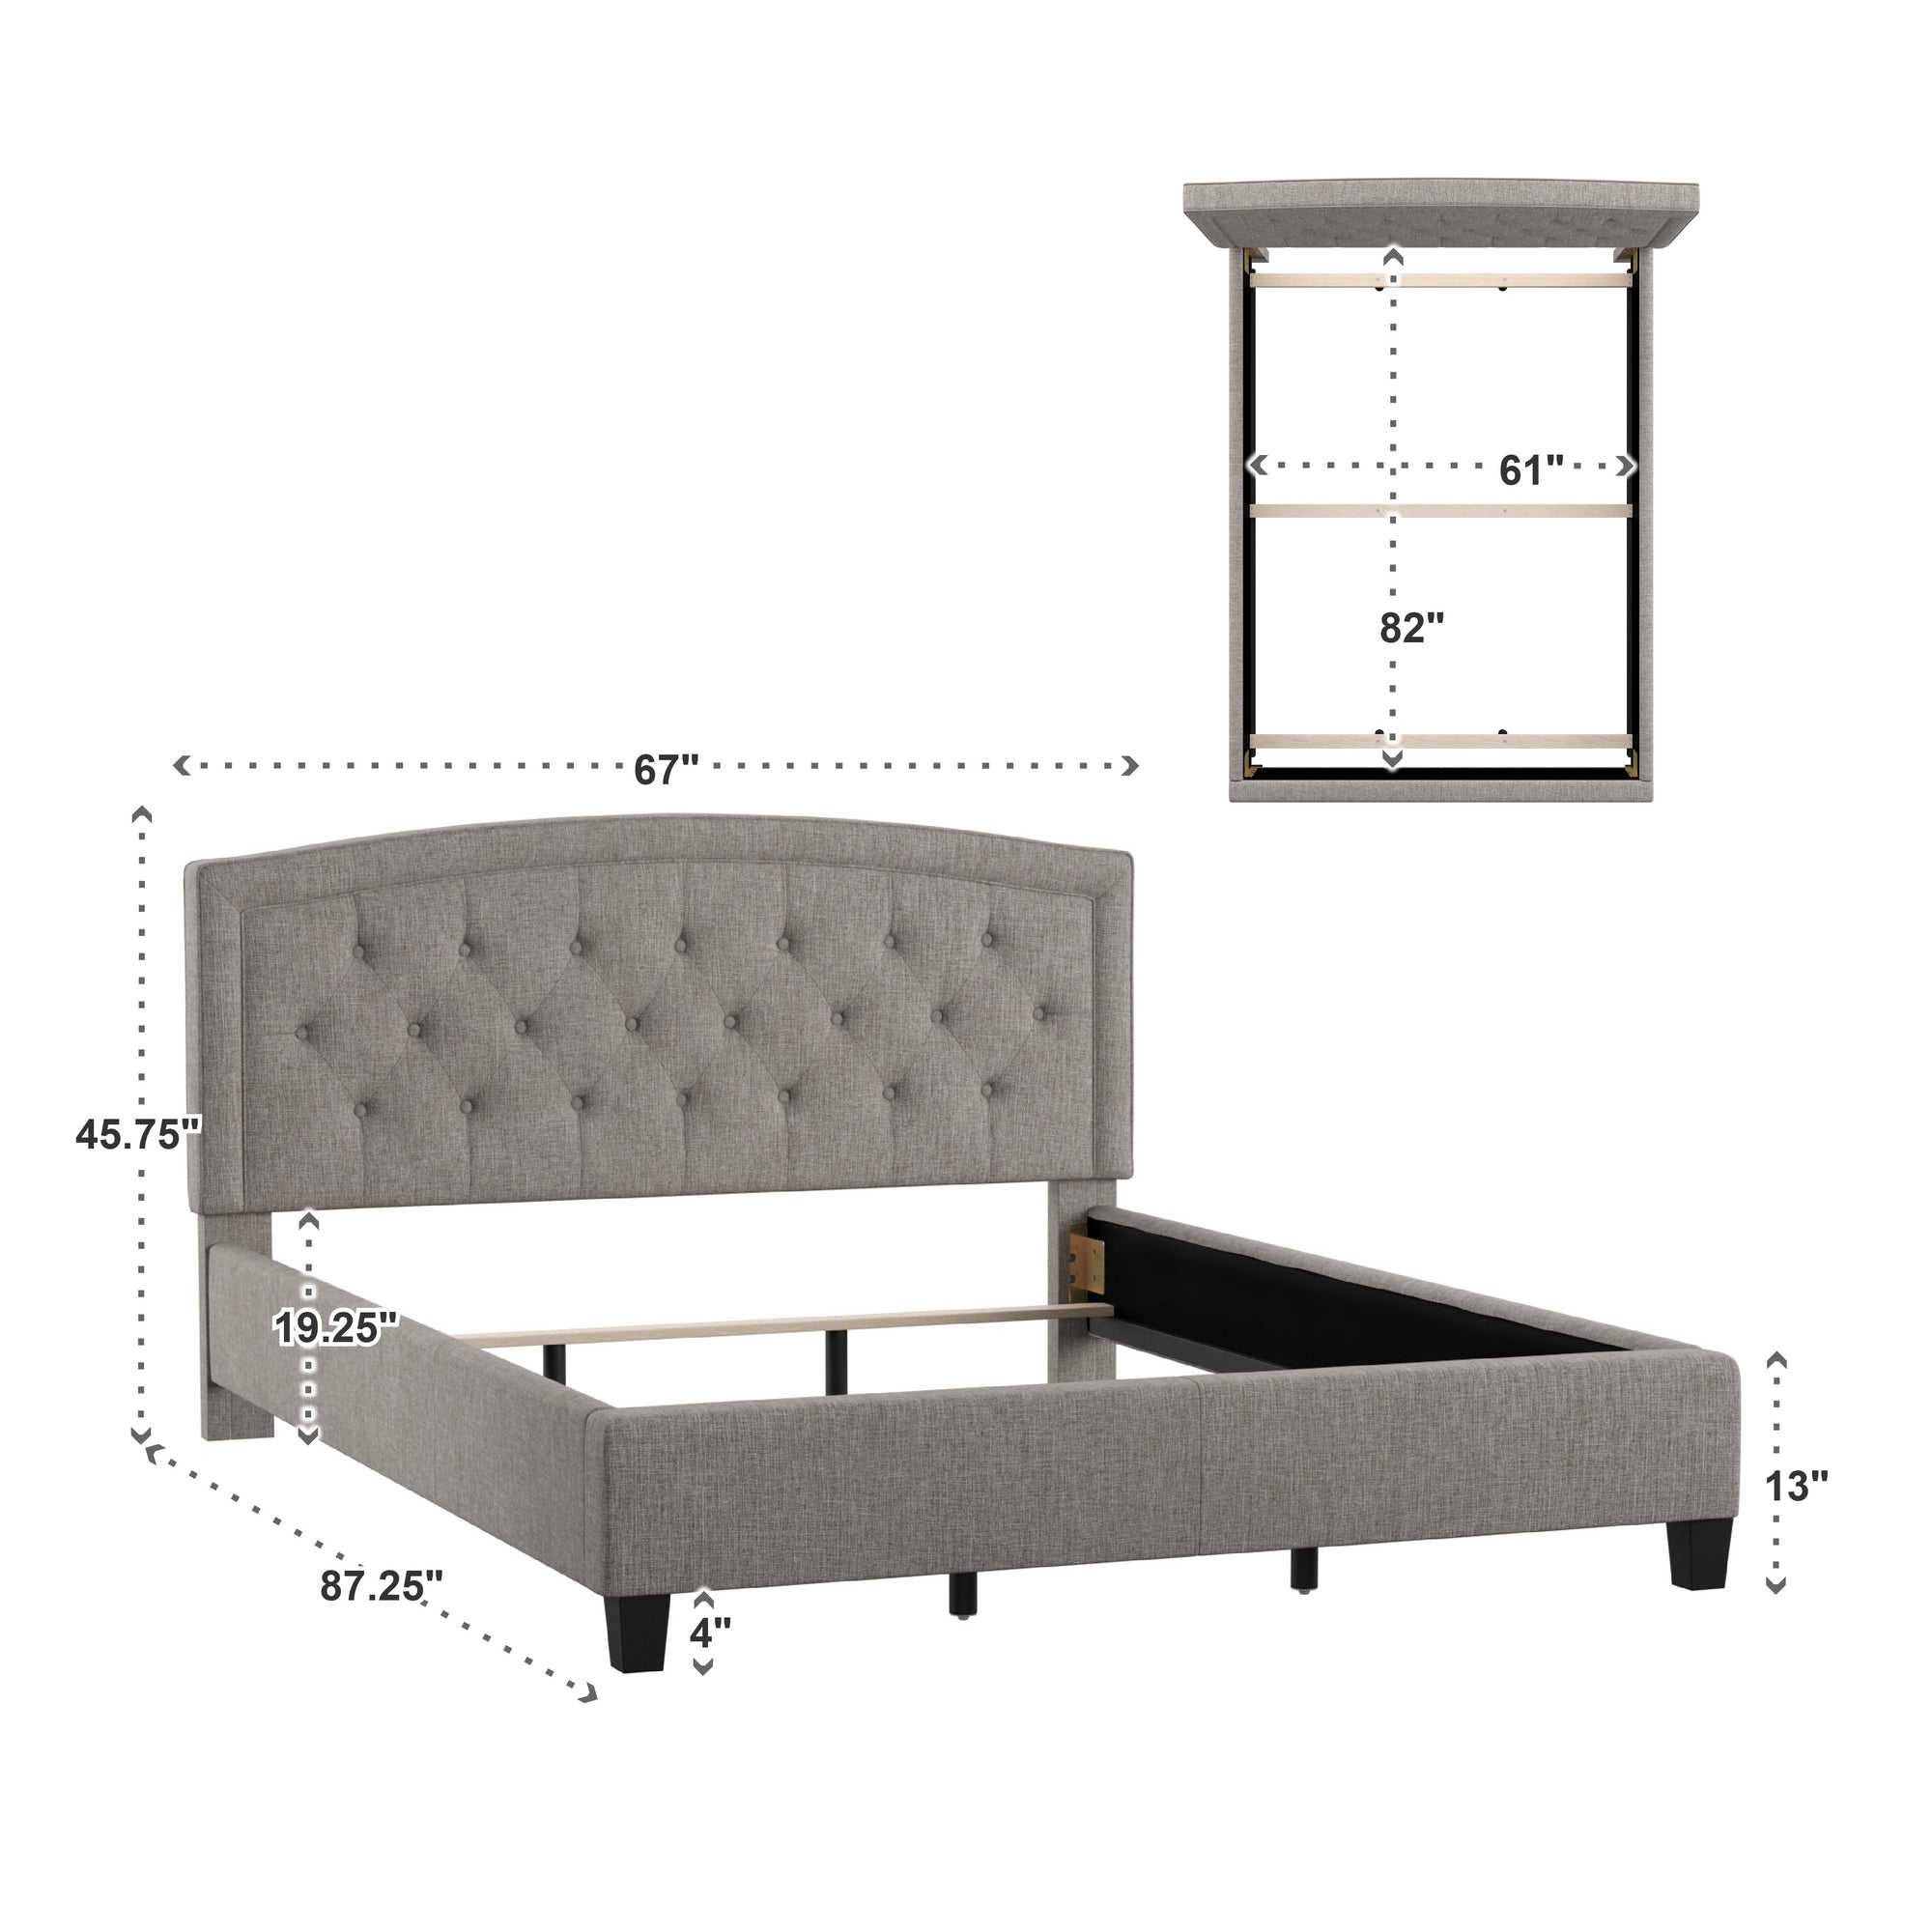 Adjustable Diamond-Tufted Arch-Back Bed - Grey, Queen